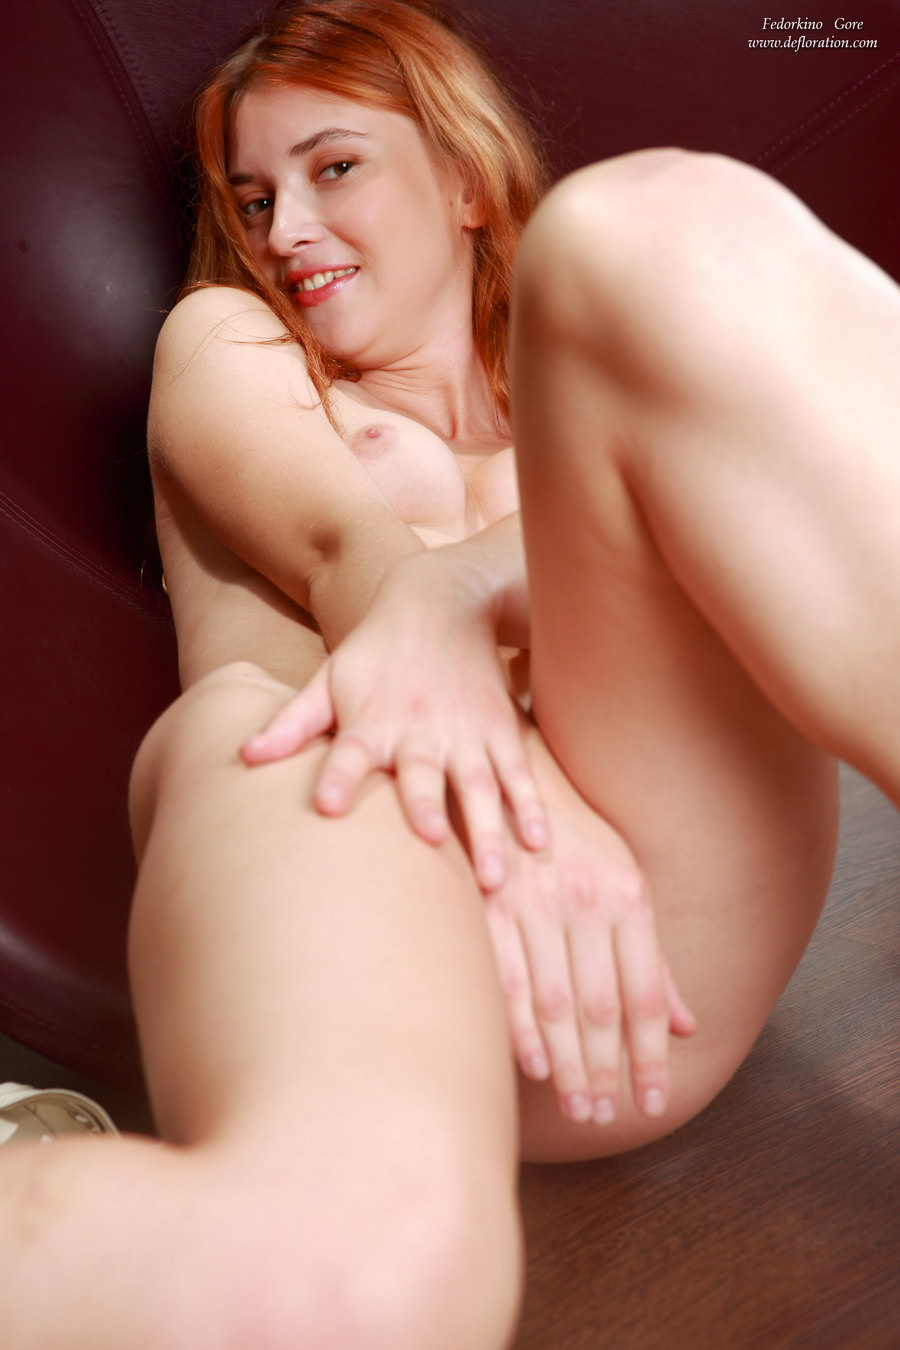 Rather Teen virgin ginger pussy seems magnificent